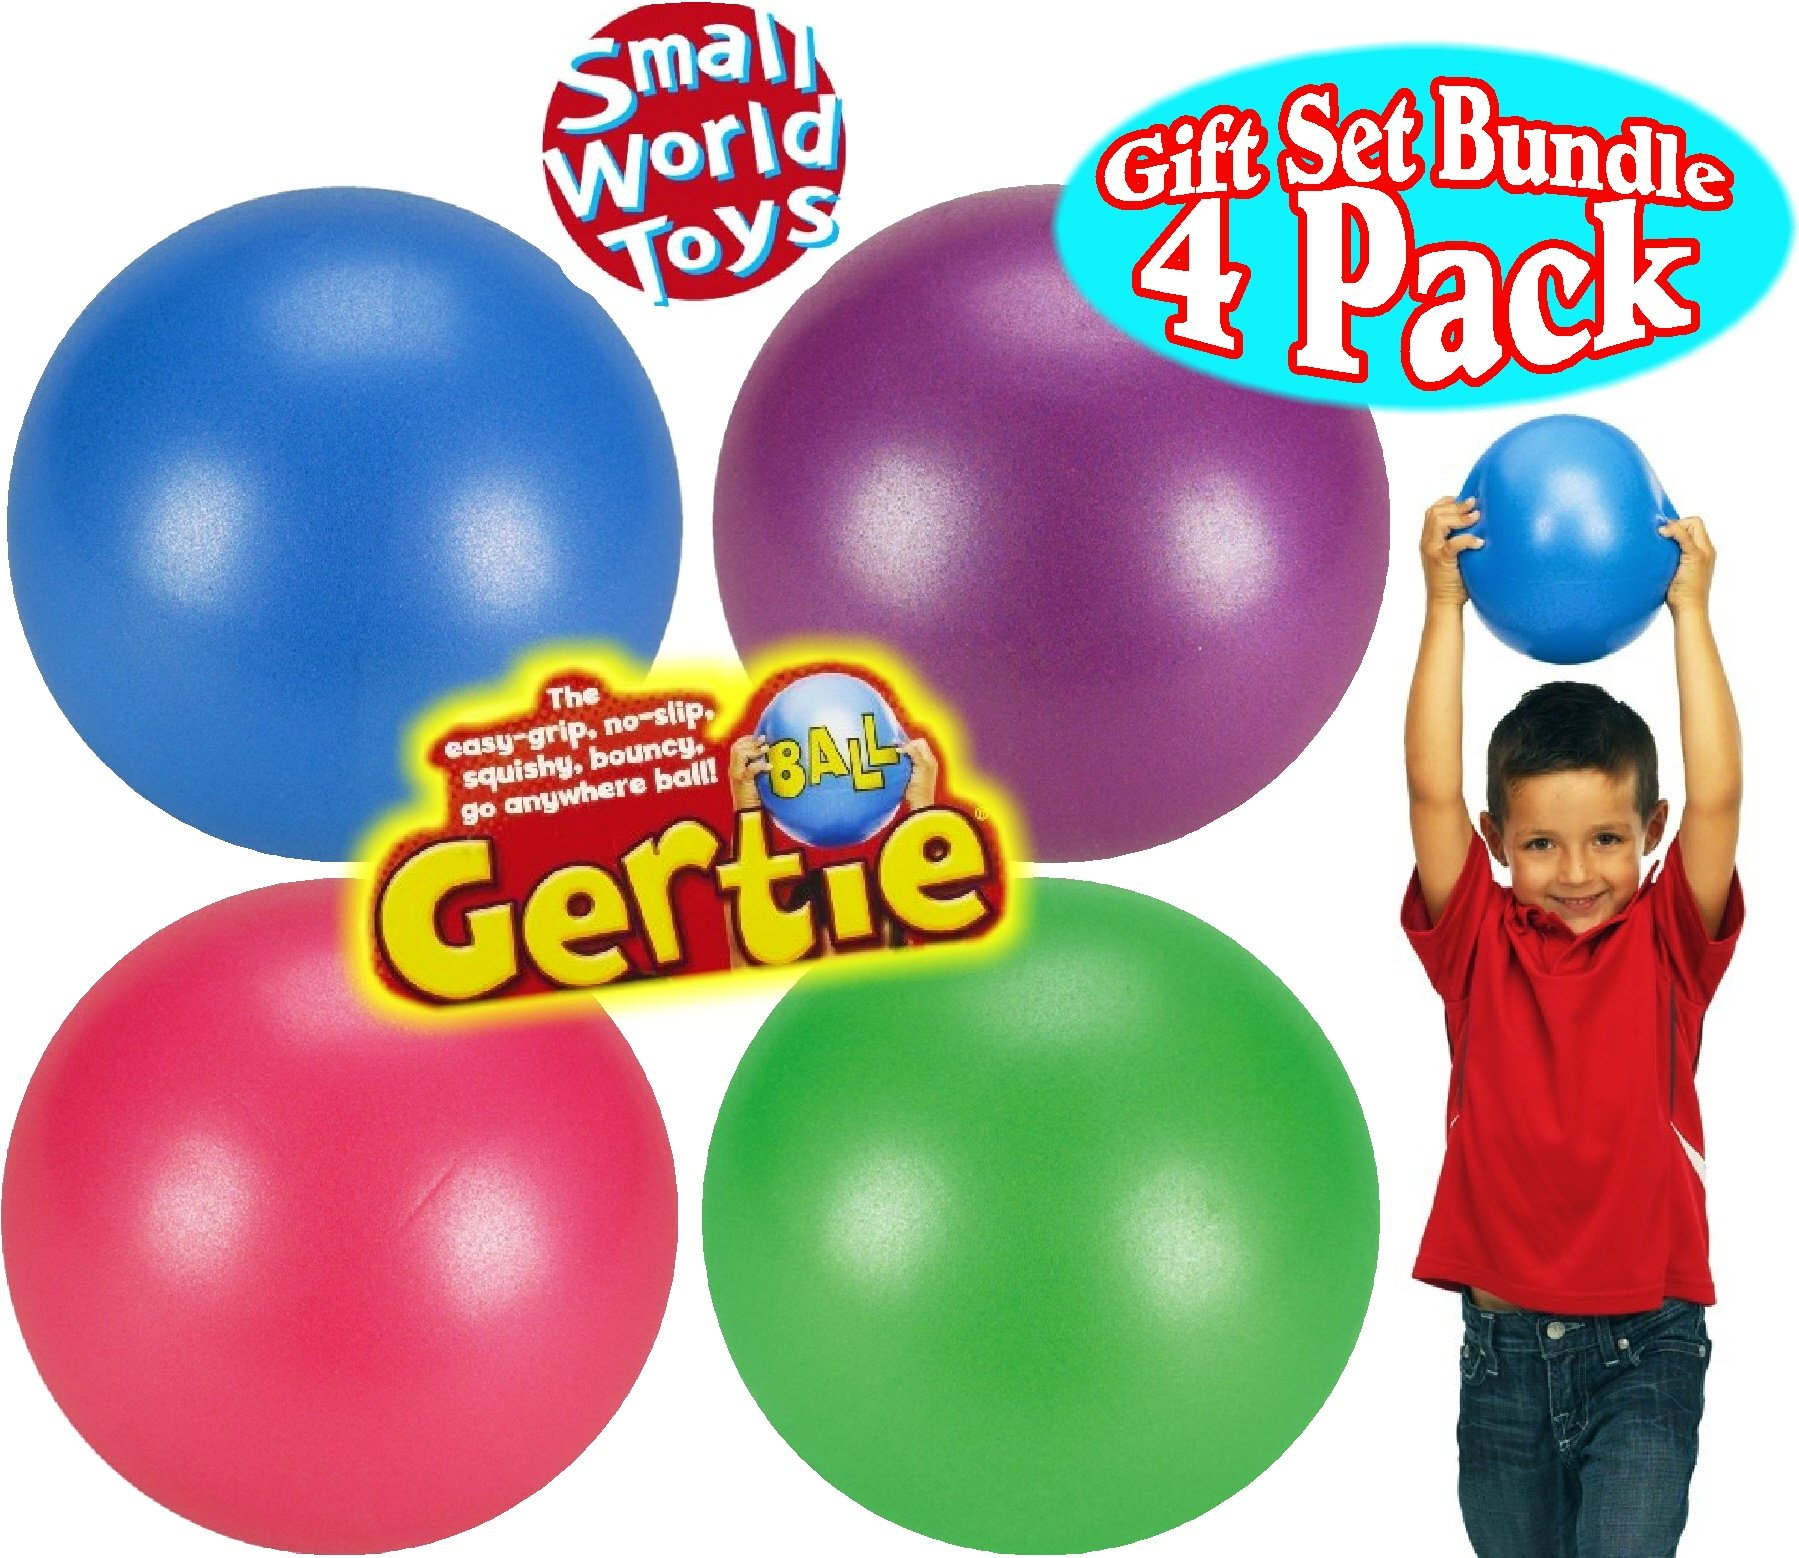 Original Gertie Ball Blue, Pink, Purple & Green Gift Set Bundle - 4 Pack by Small World Toys